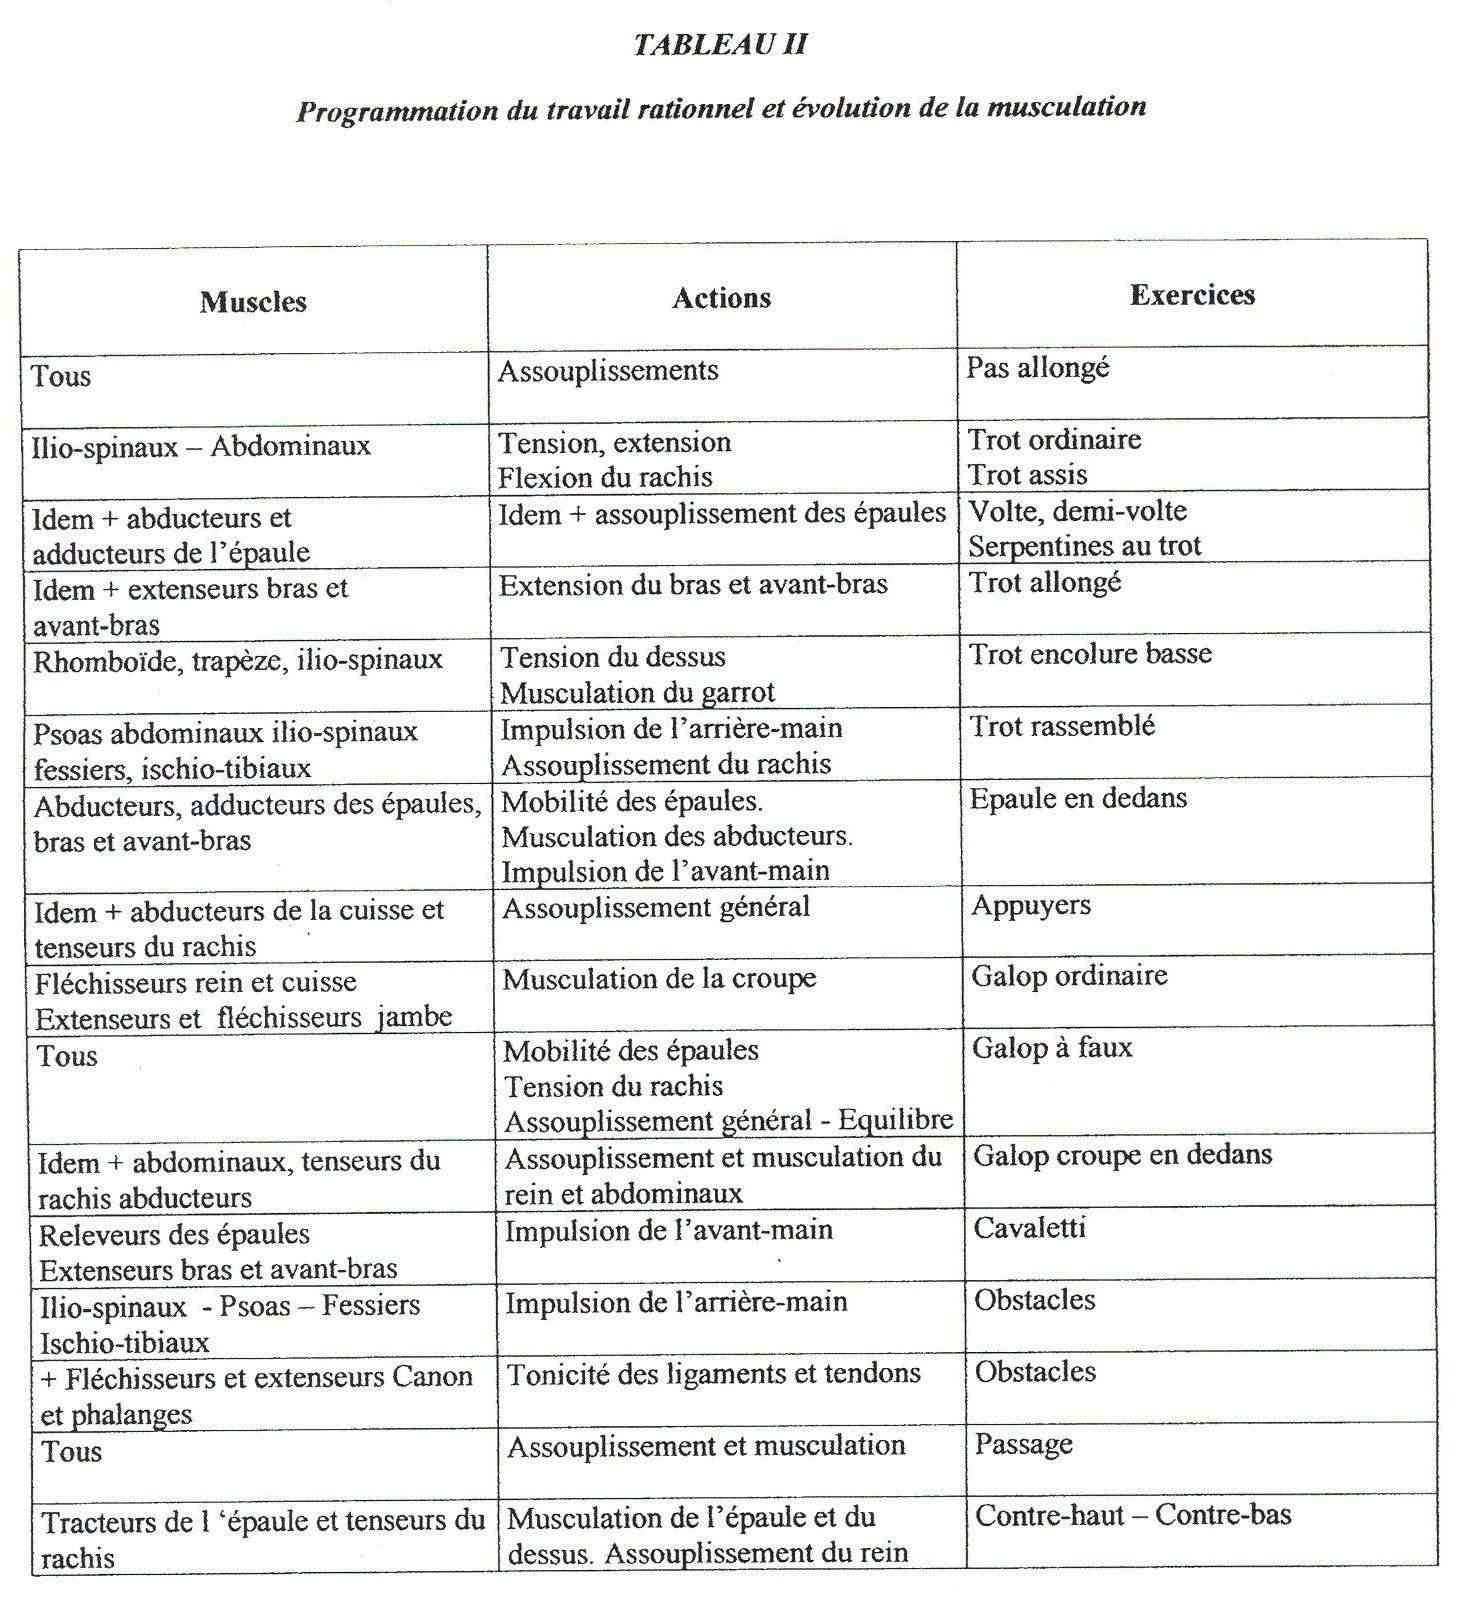 Fiches correspondance exercices - musculature 33_tab10